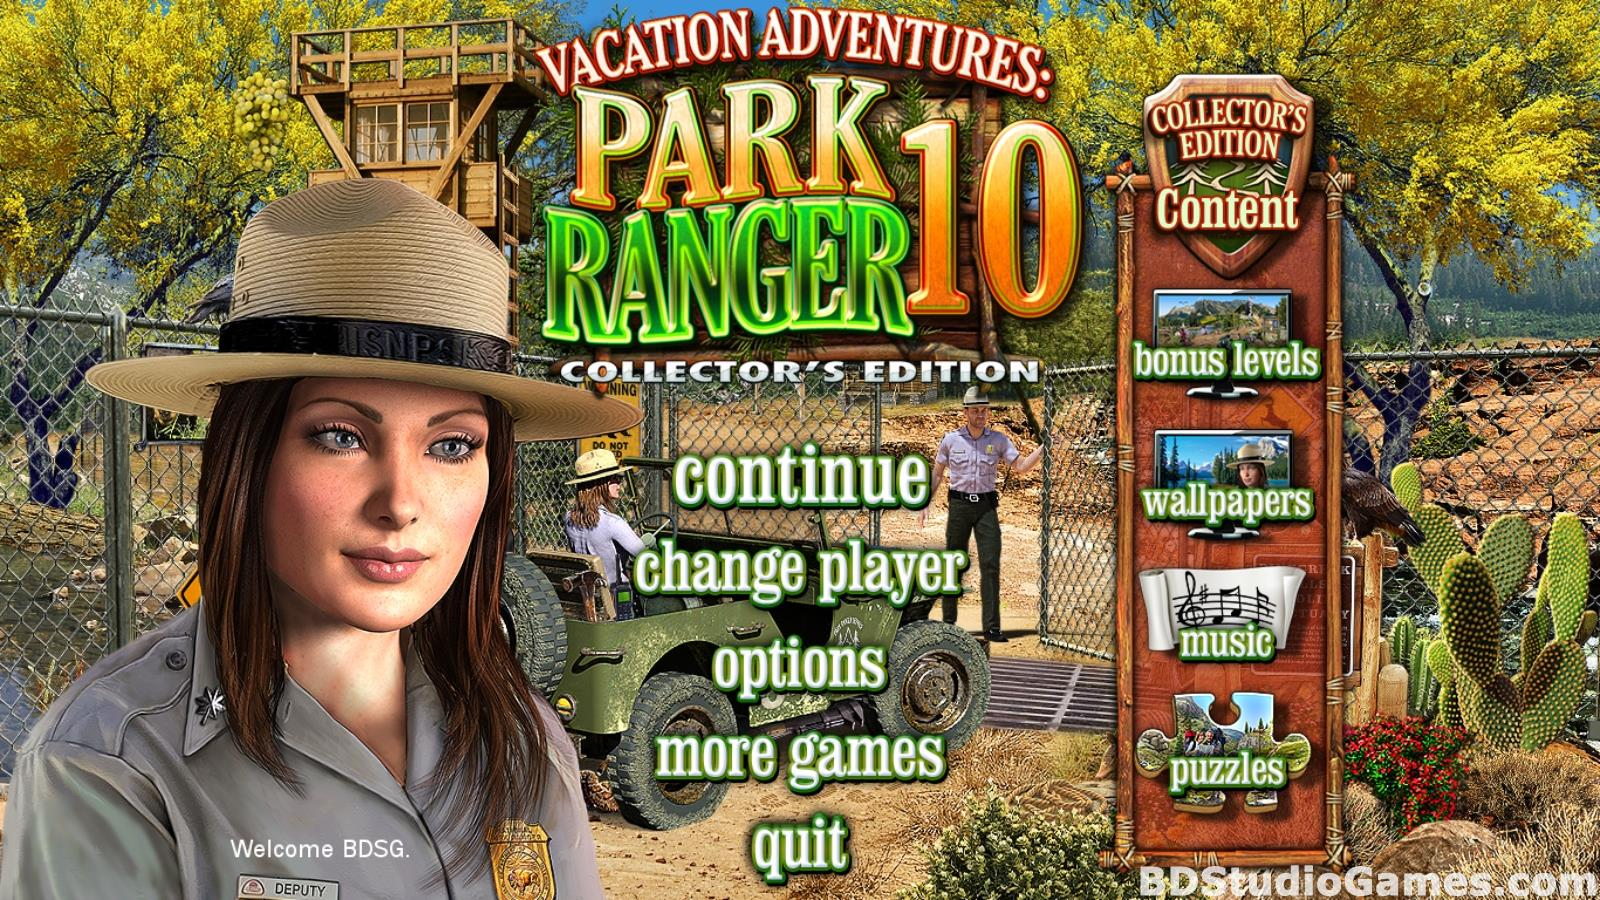 Vacation Adventures: Park Ranger 10 Collector's Edition Free Download Screenshots 01